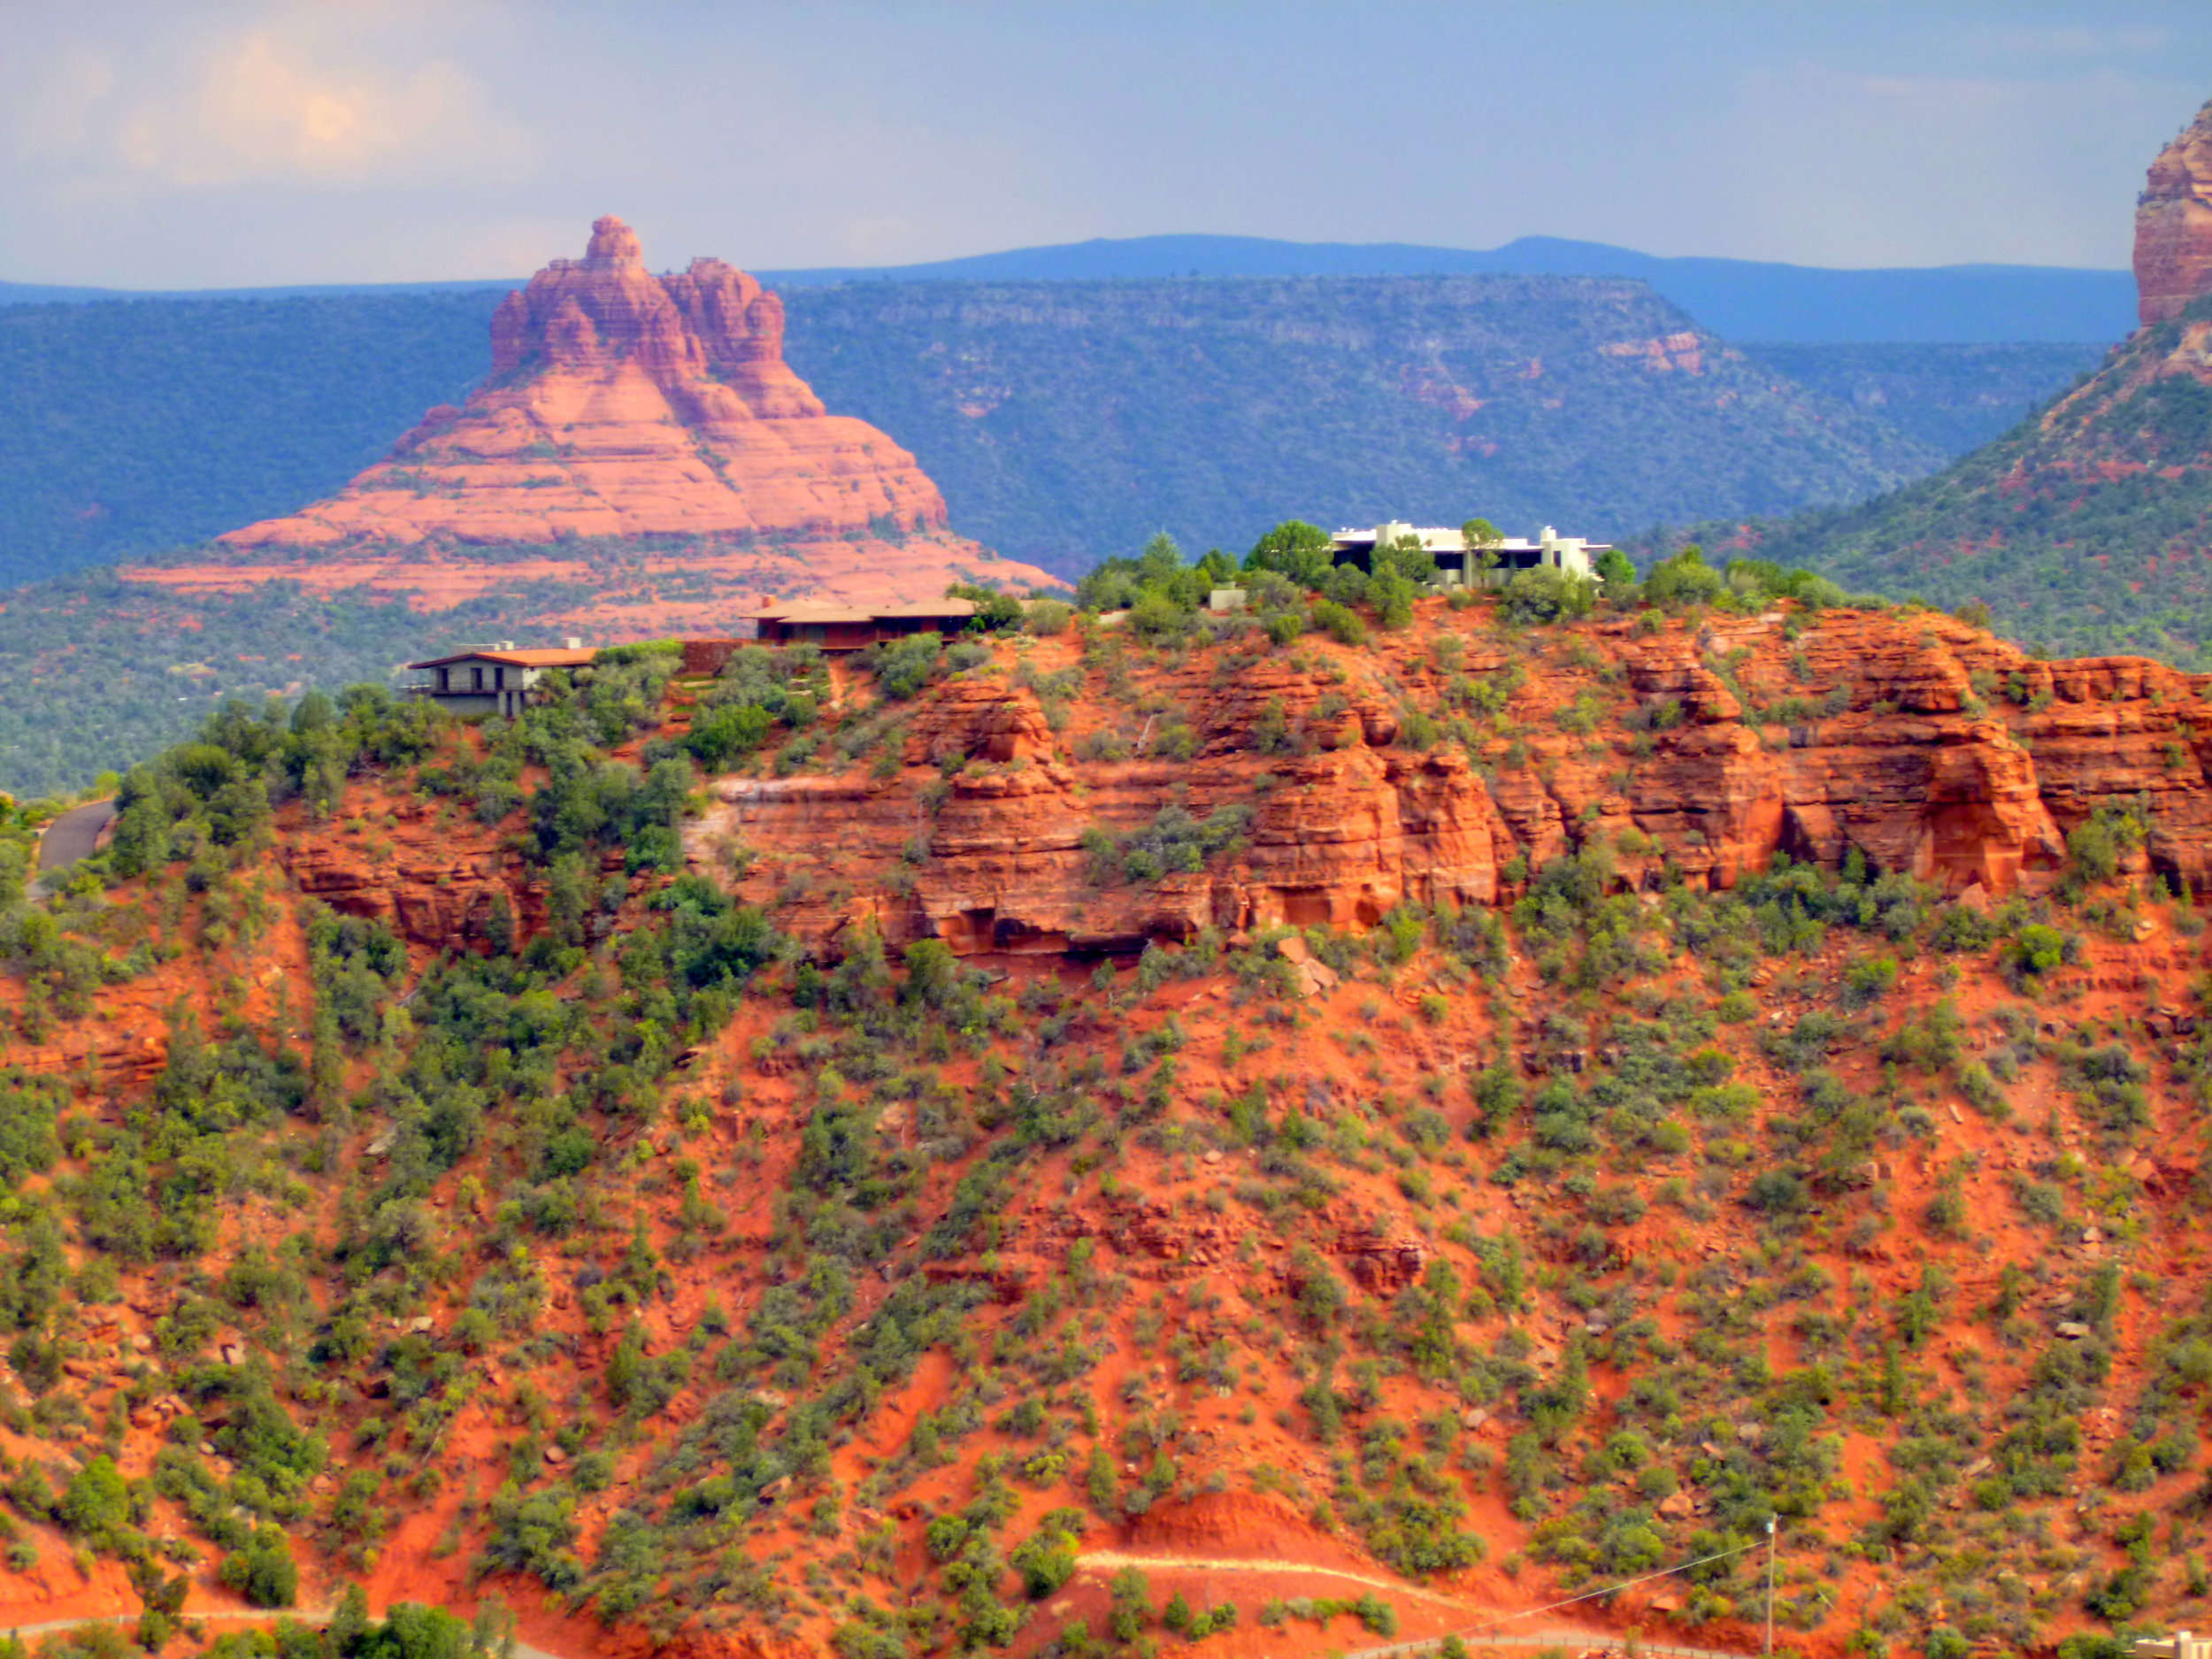 bright_mountains_vortex_sedona.JPG